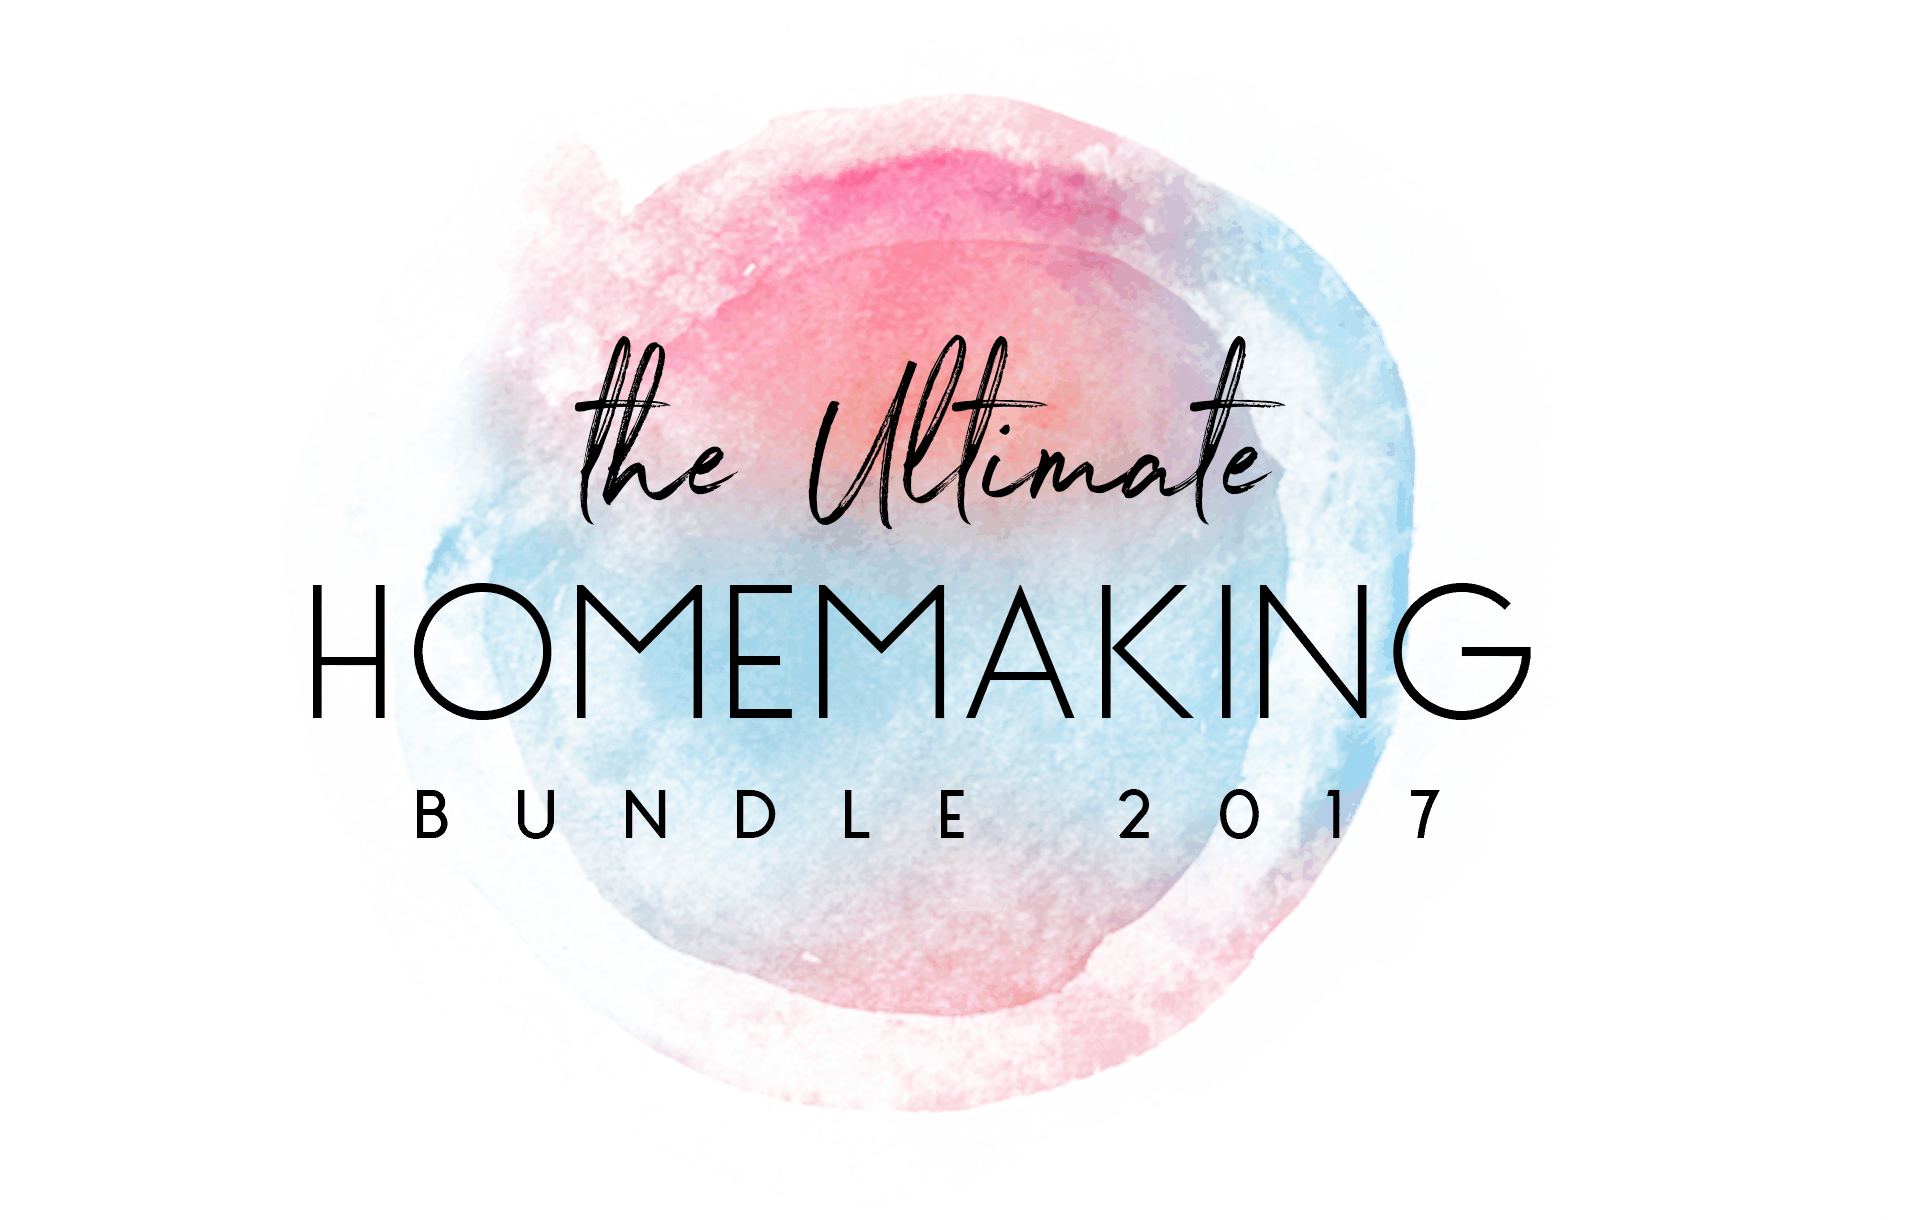 106 eBooks, eCourses, audios, videos, printables, summits, and even a membership site, all created to make homemaking and mothering easier and more enjoyable for LESS THAN $30!